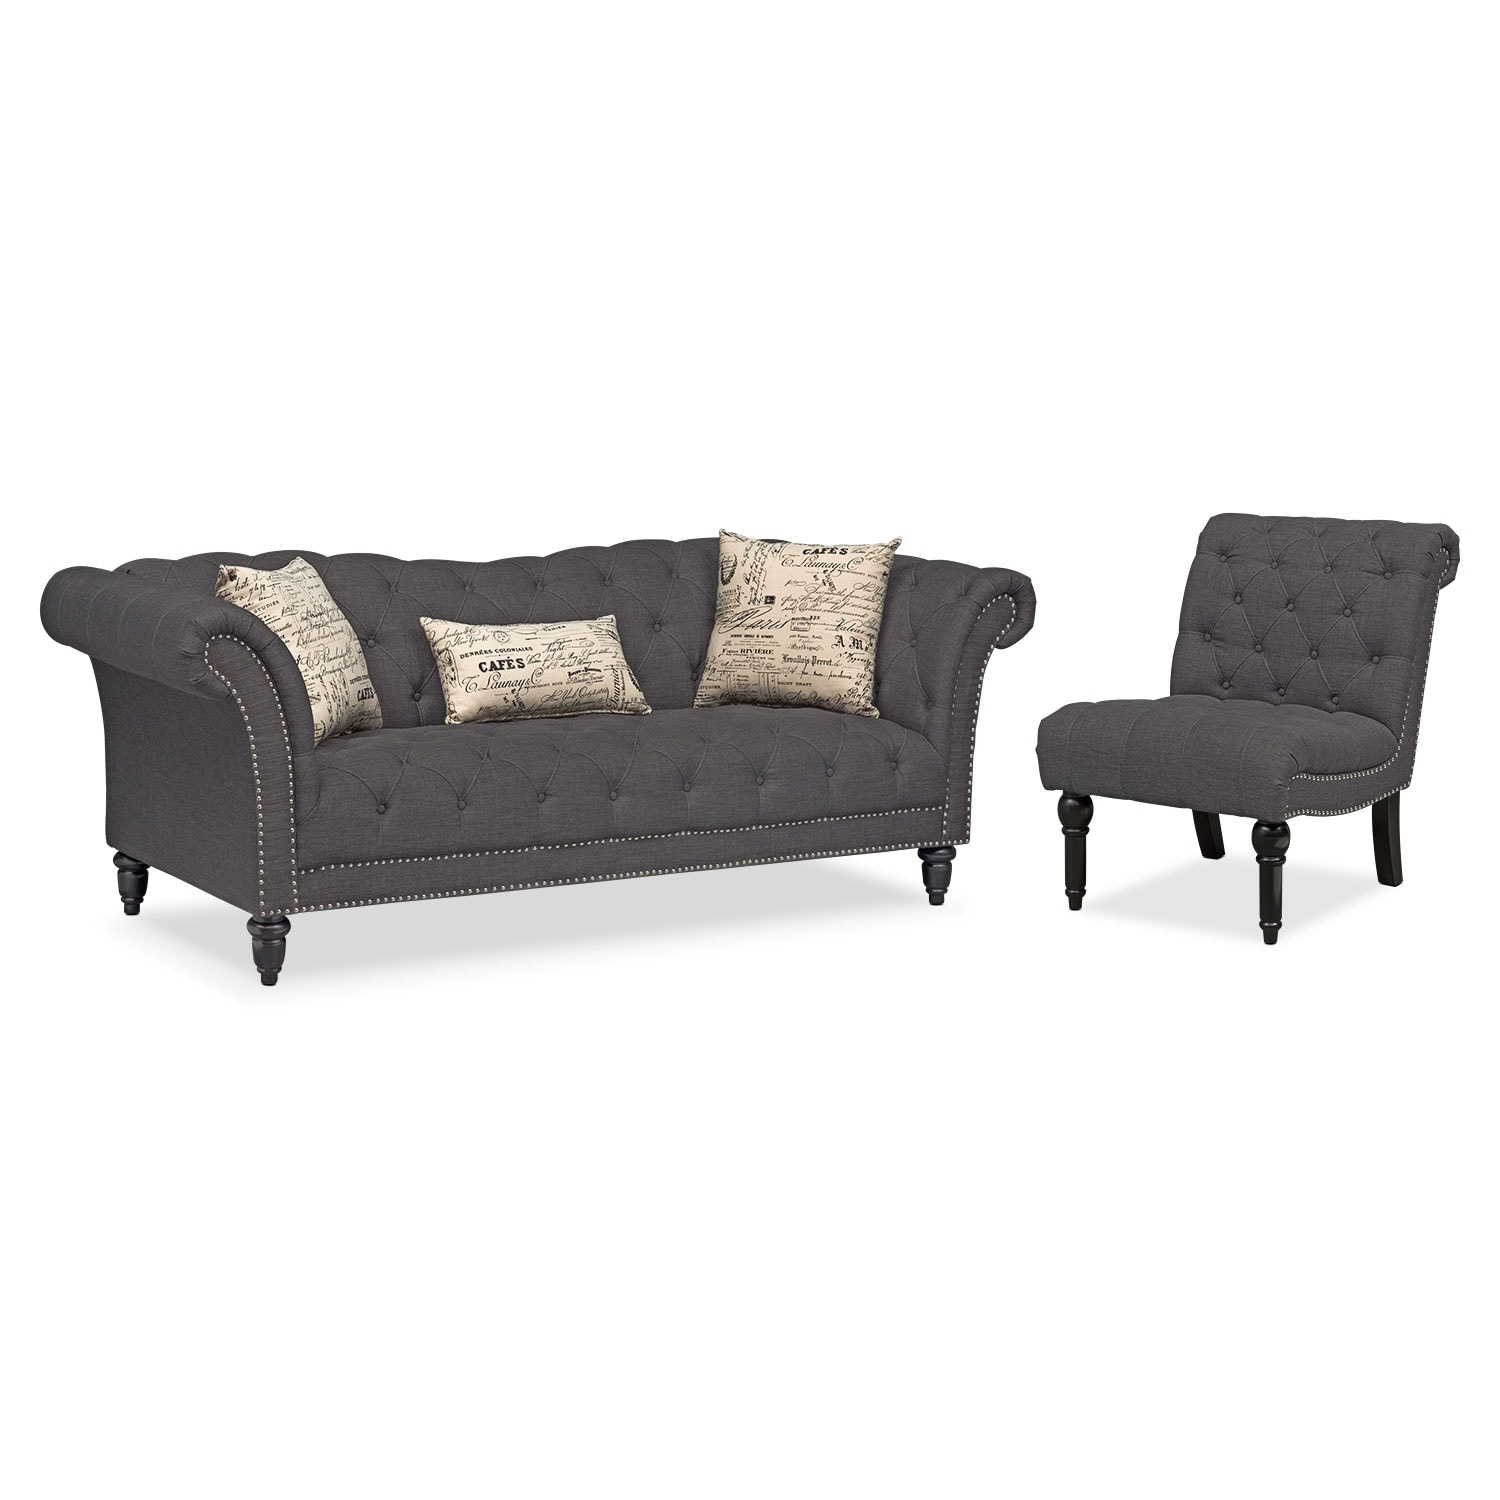 Marisol Sofa and Armless Chair - Charcoal